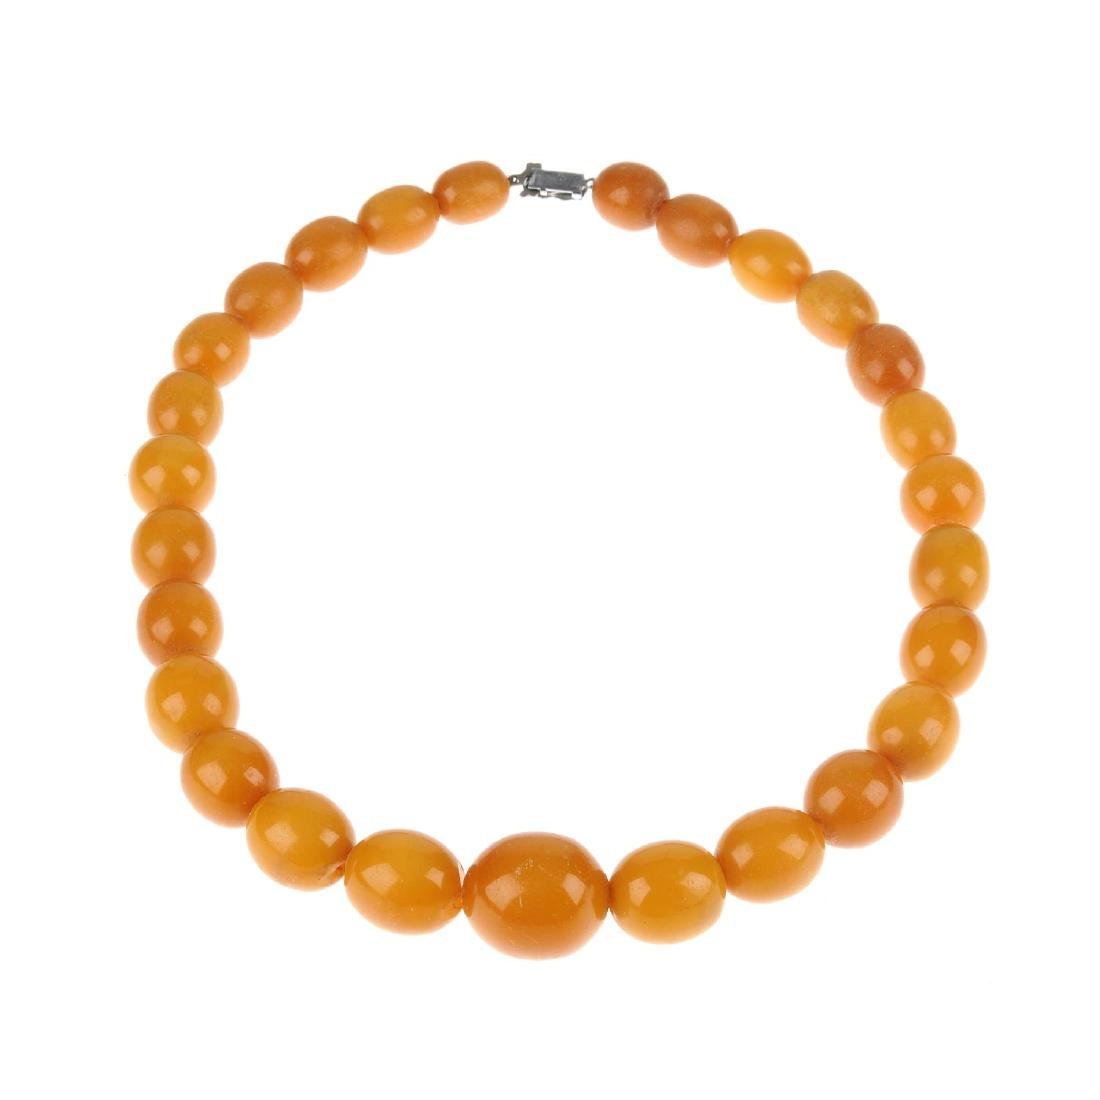 A natural Baltic amber necklace. Designed as a row of